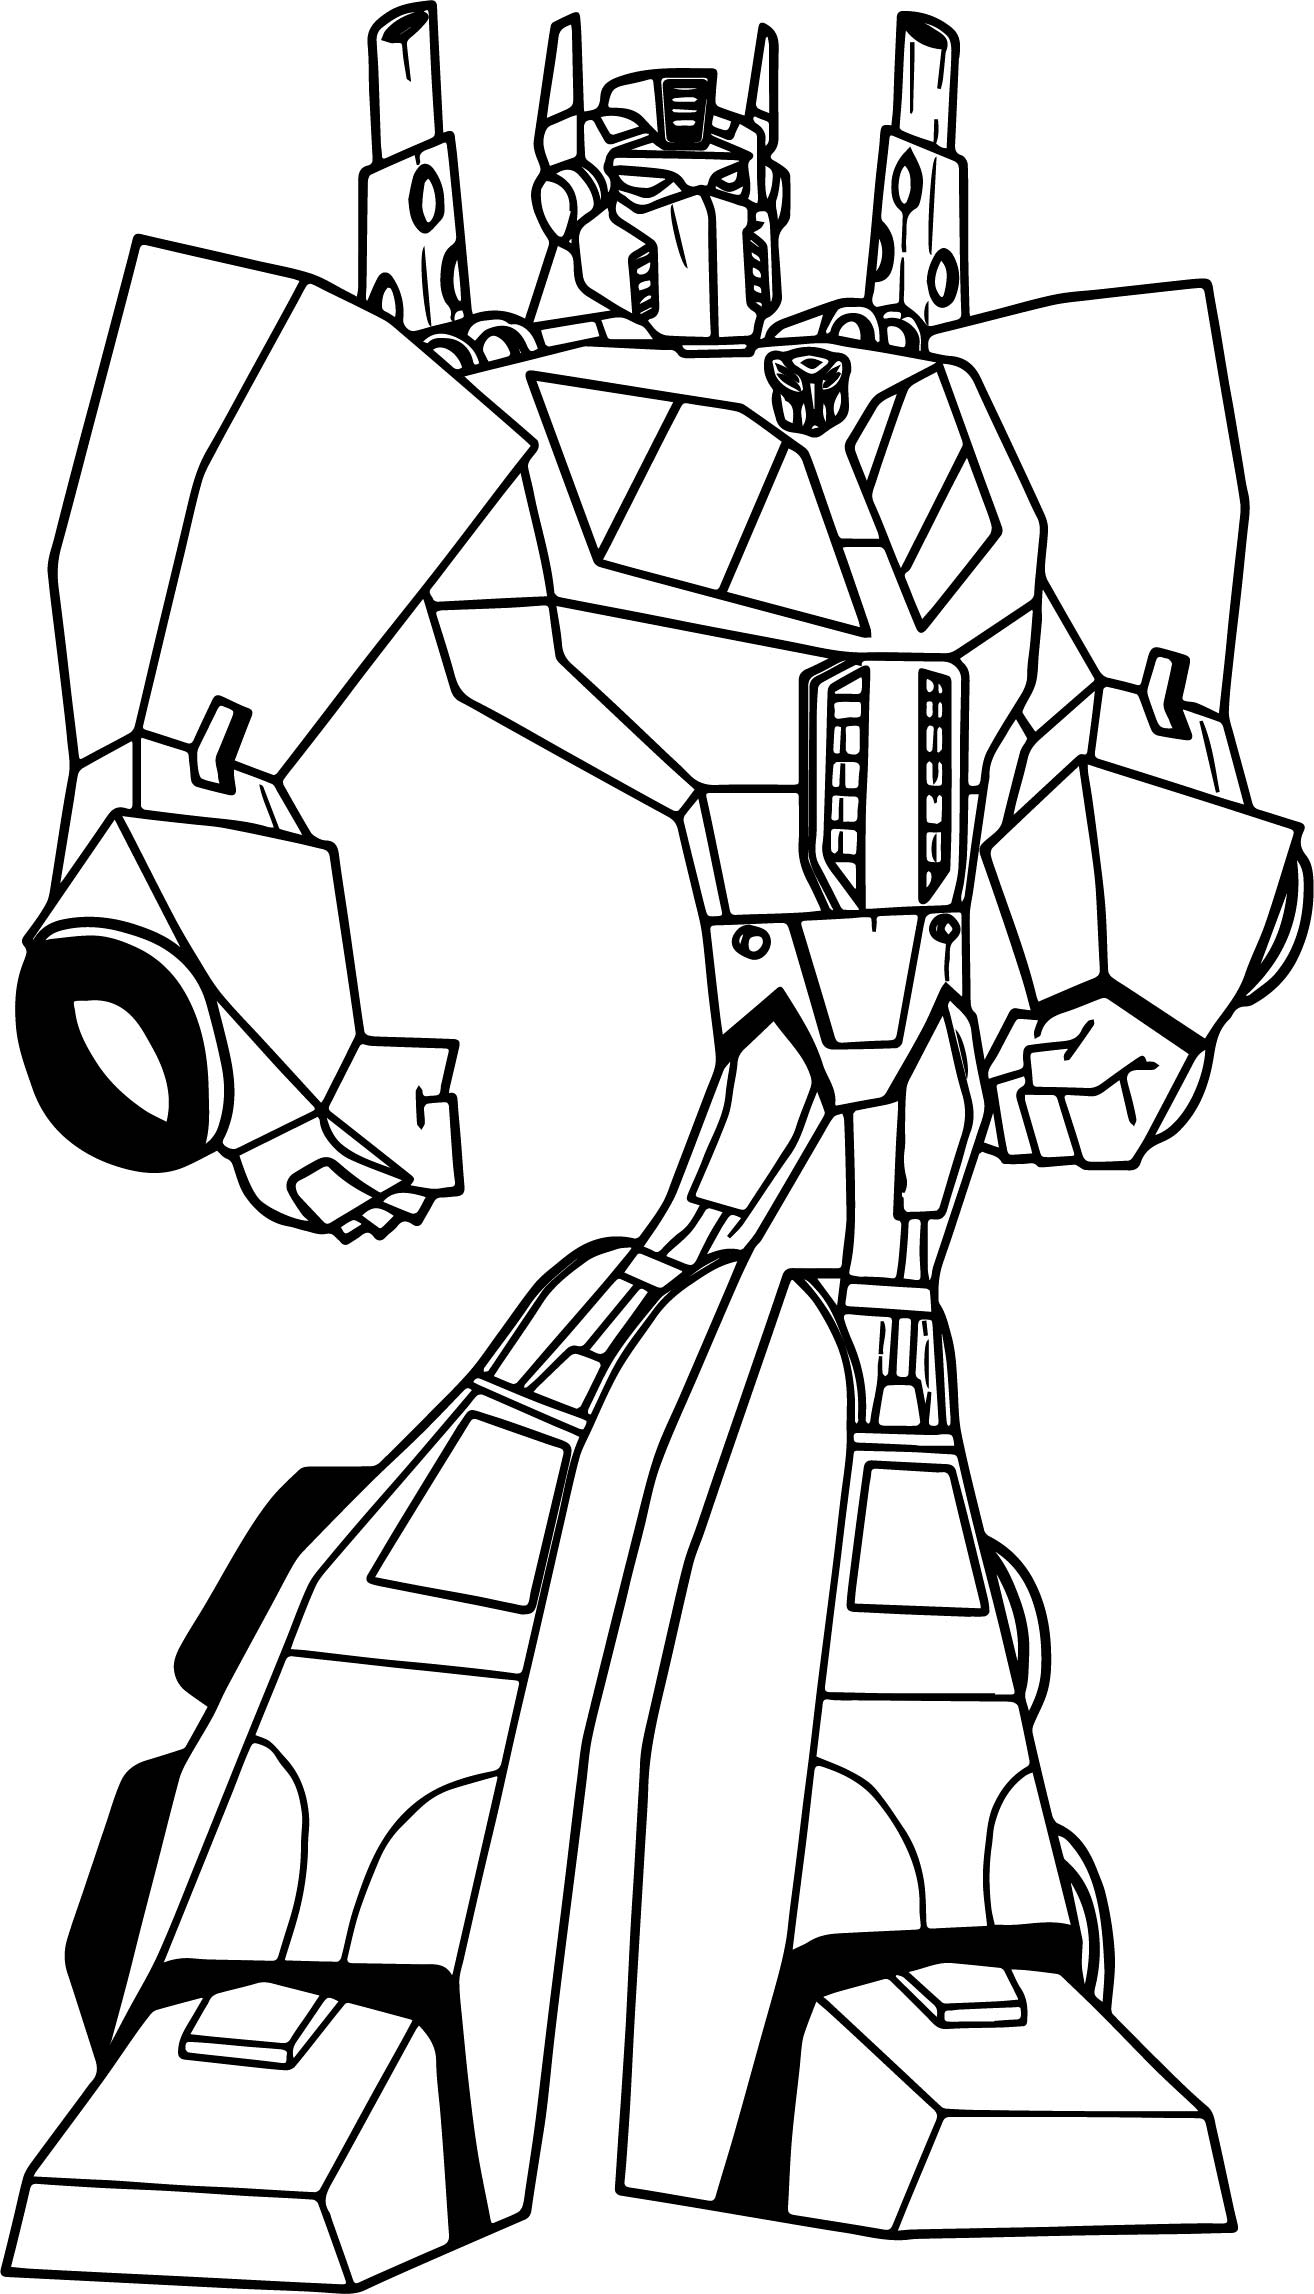 powered transformers coloring page wecoloringpage